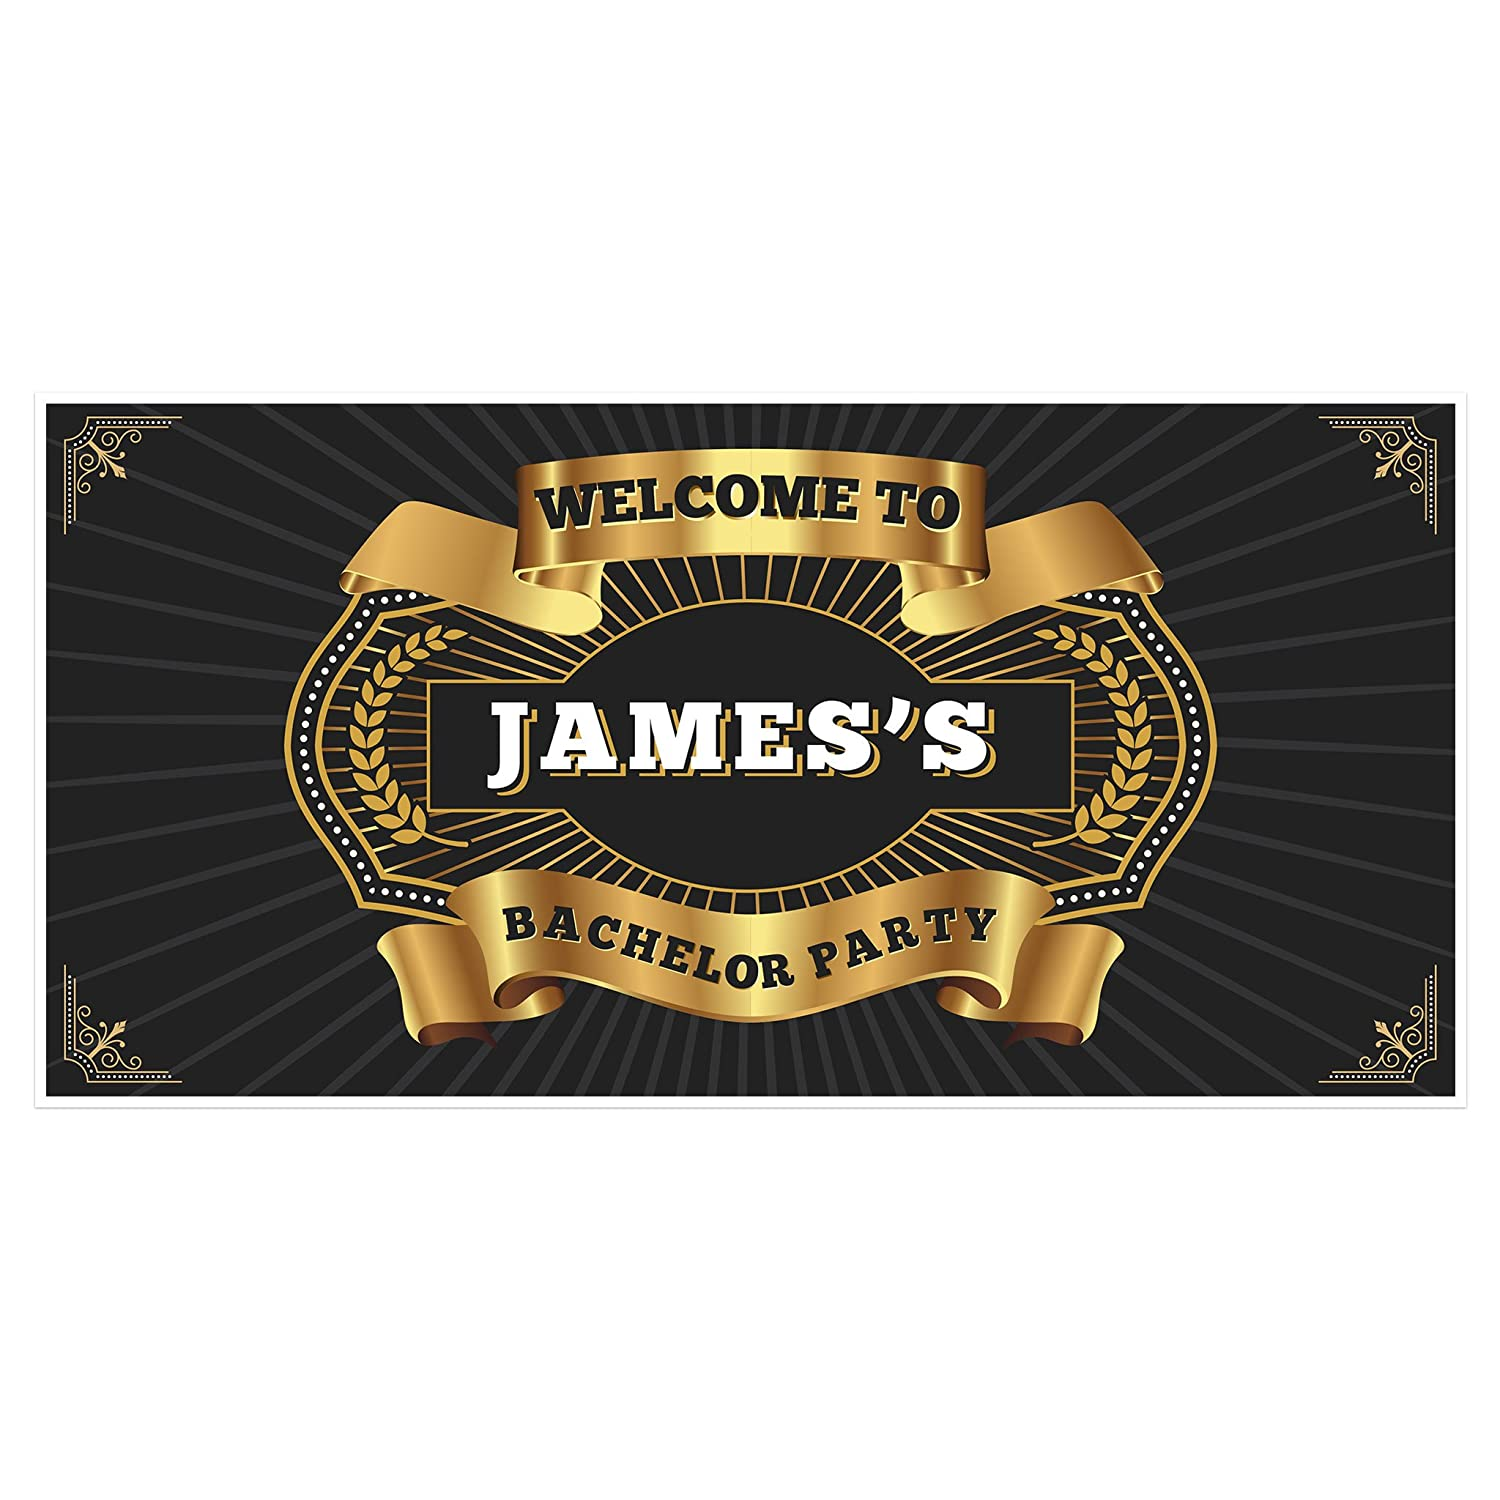 Welcome to Bachelor Party Gold Badge Banner Backdrop Decoration